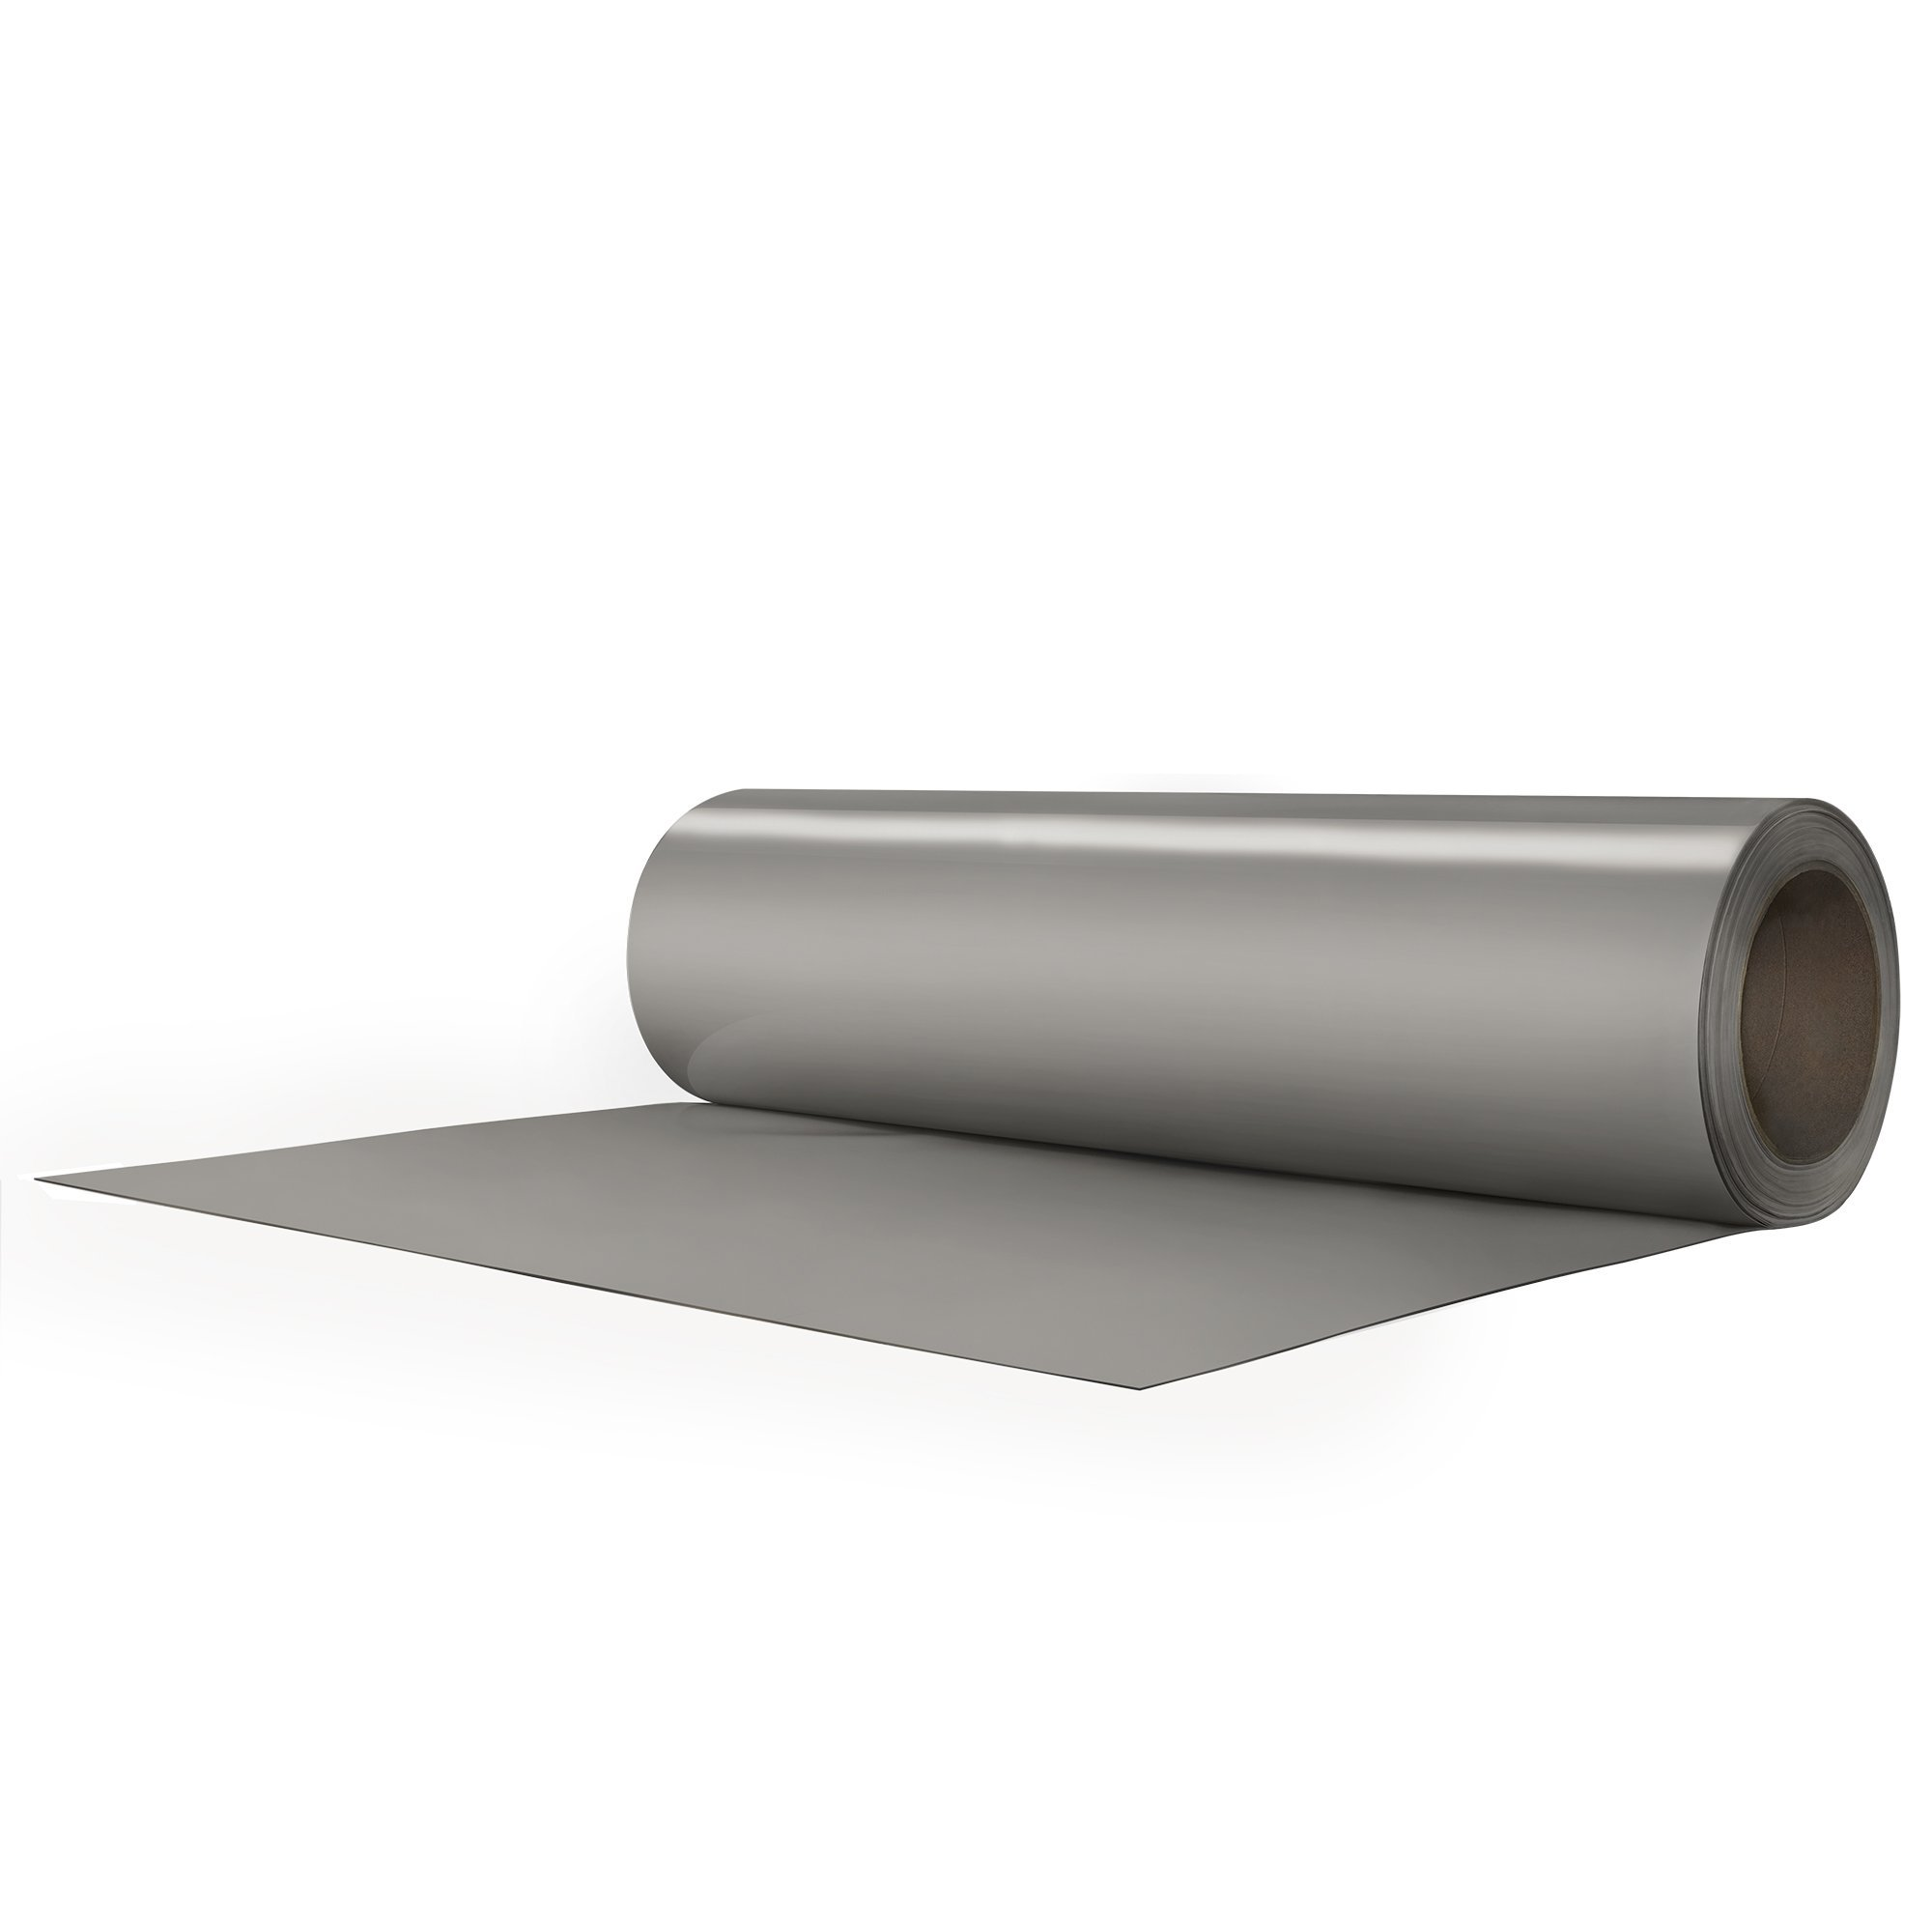 Grey RV Fiberglass/Filon Siding (5ft)